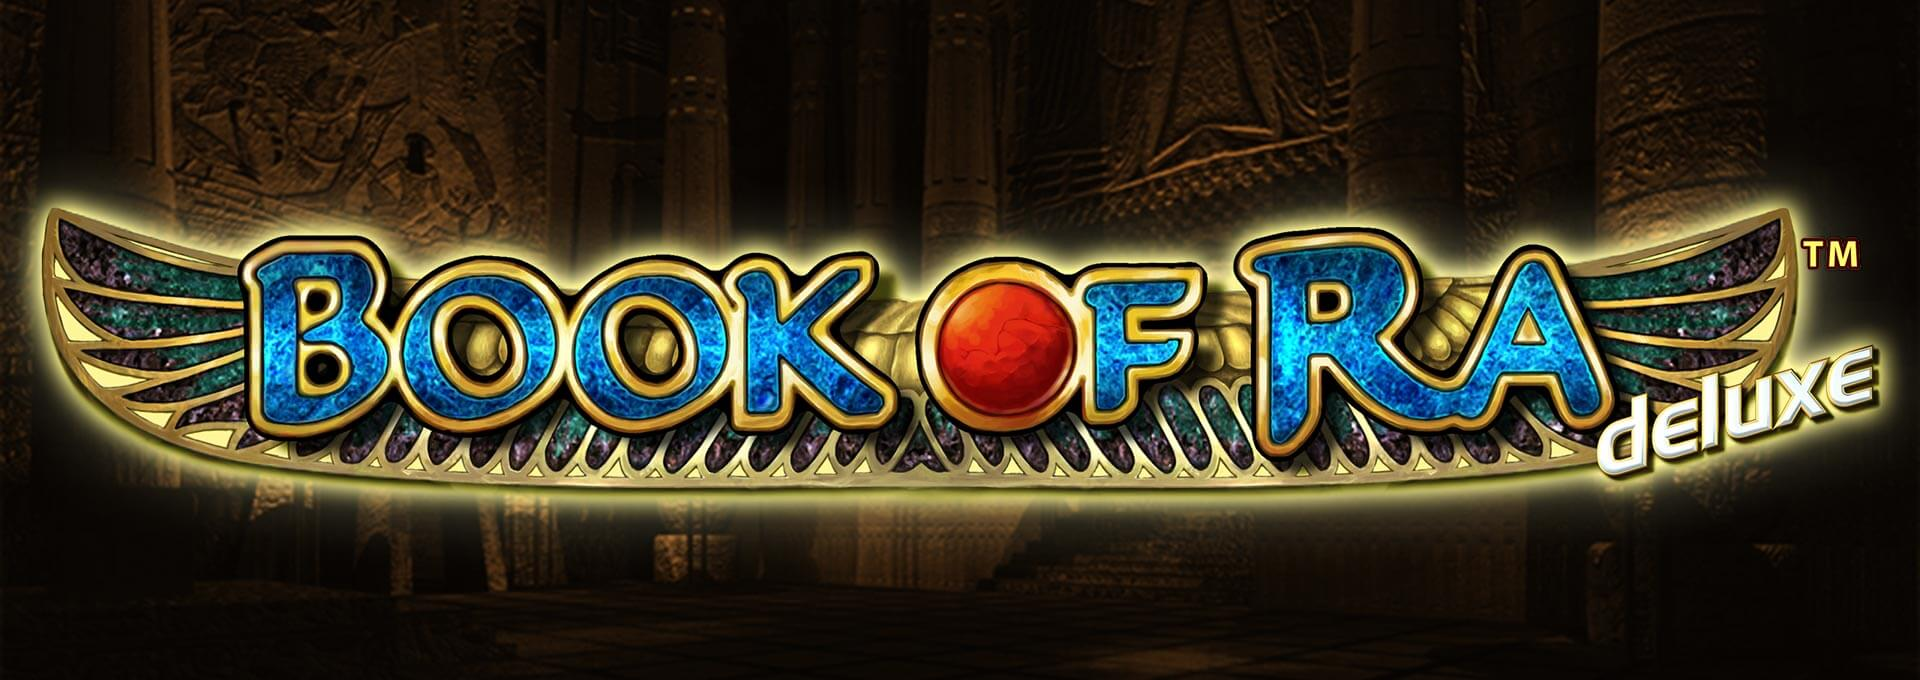 book of ra online casino casino online deutschland